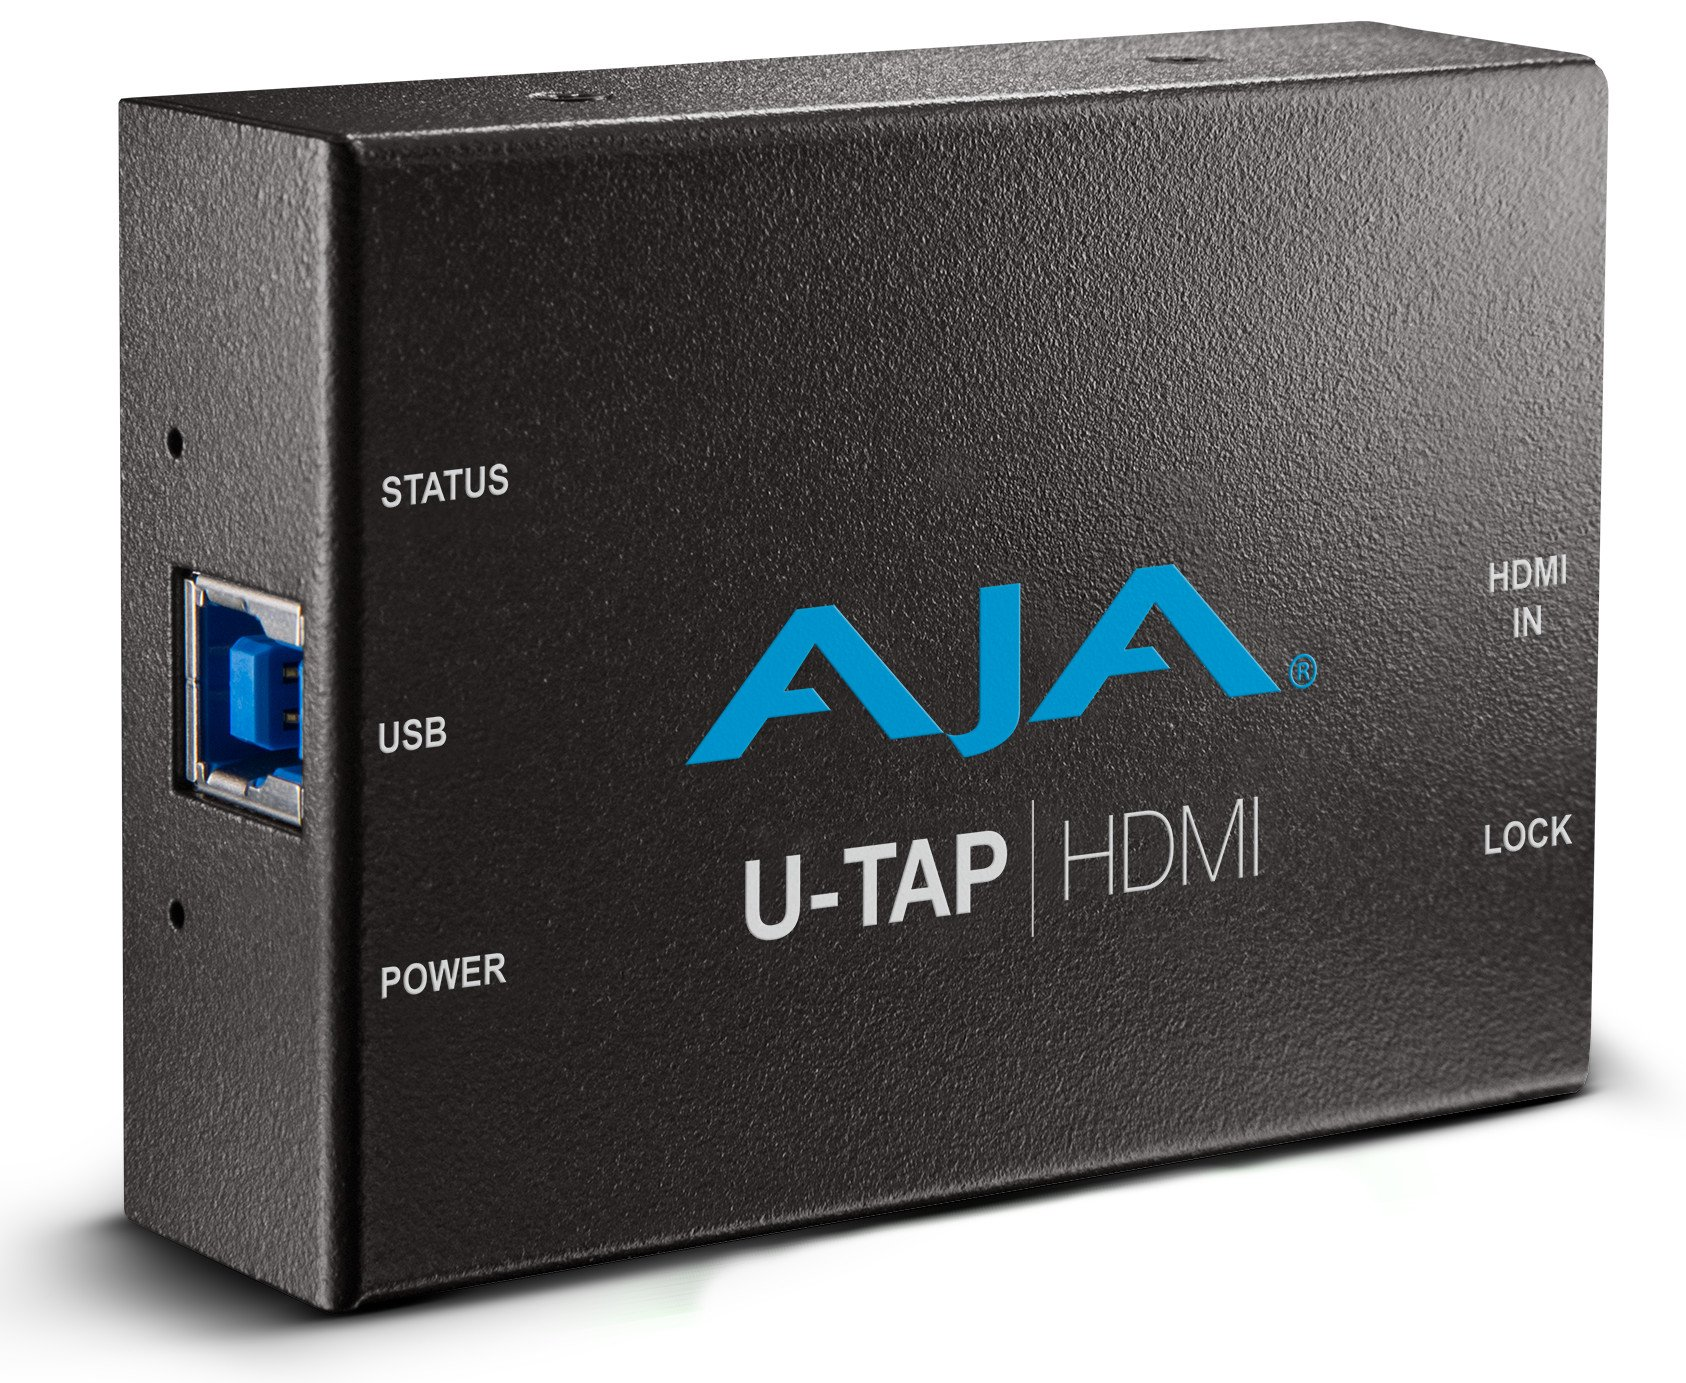 HD/SD USB 3.0 Capture Device with HDMI Input